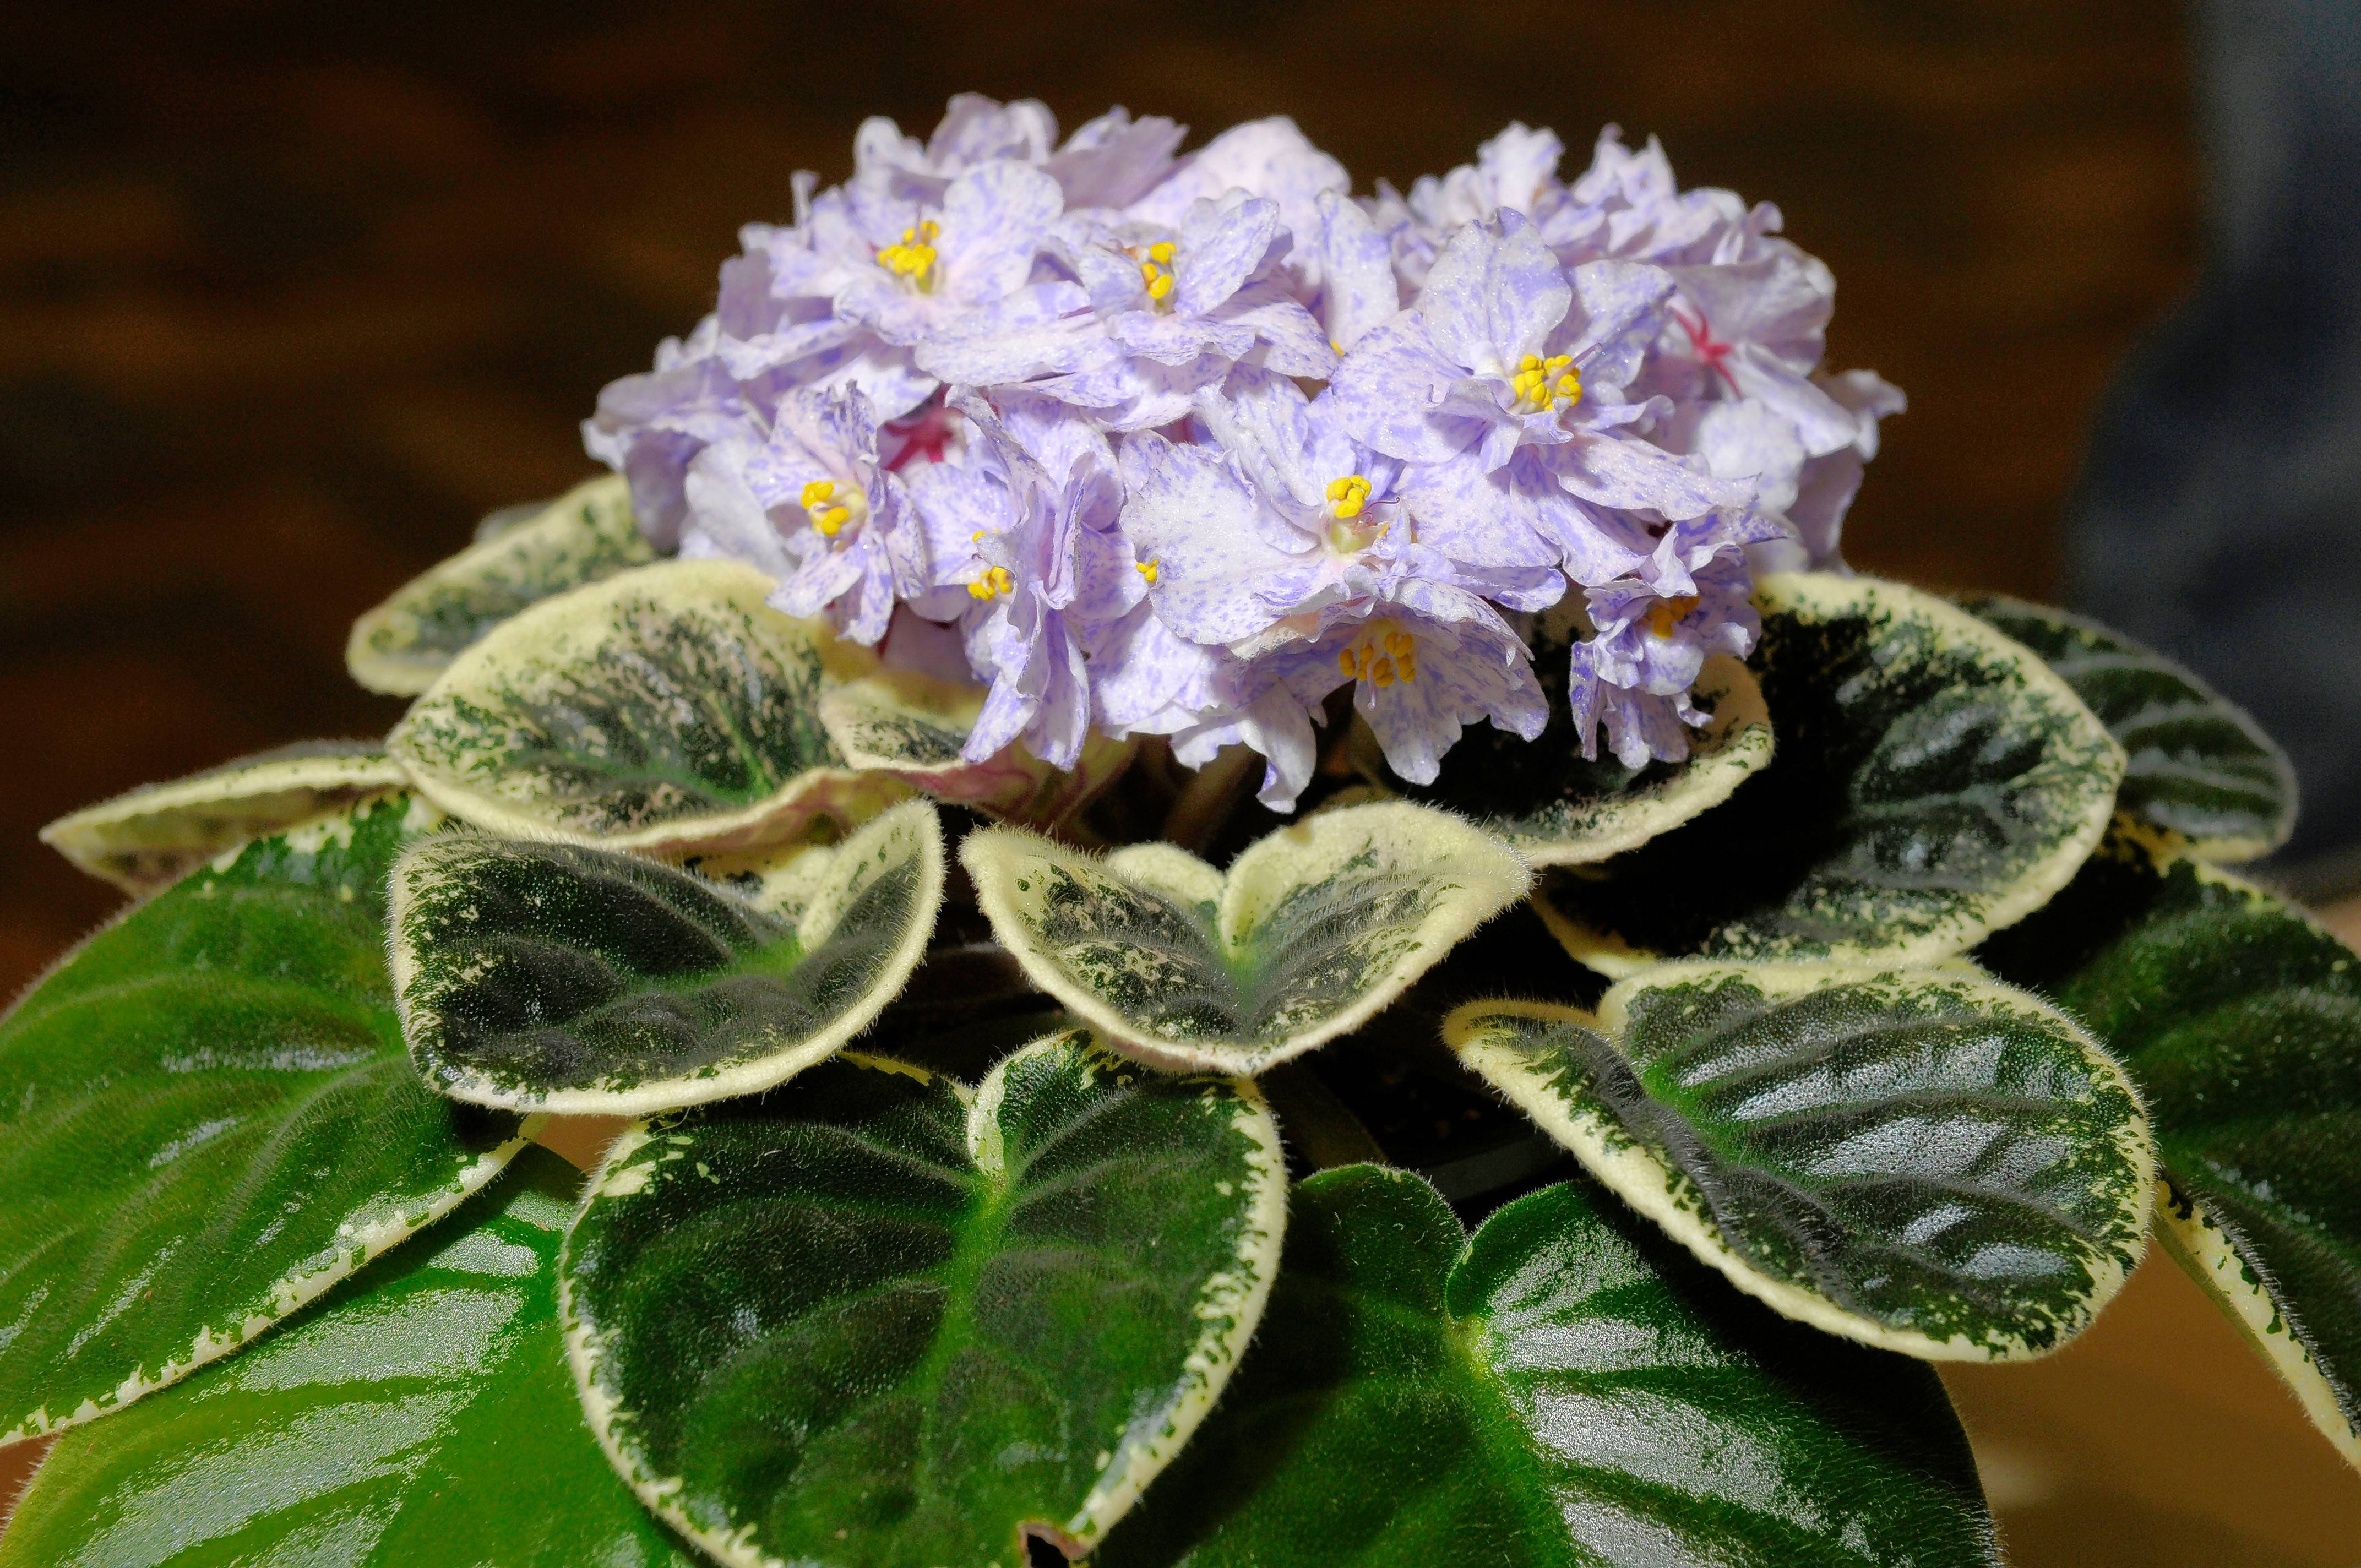 Flowering houseplants such as African violets will benefit from fertilizing once a month in the winter.